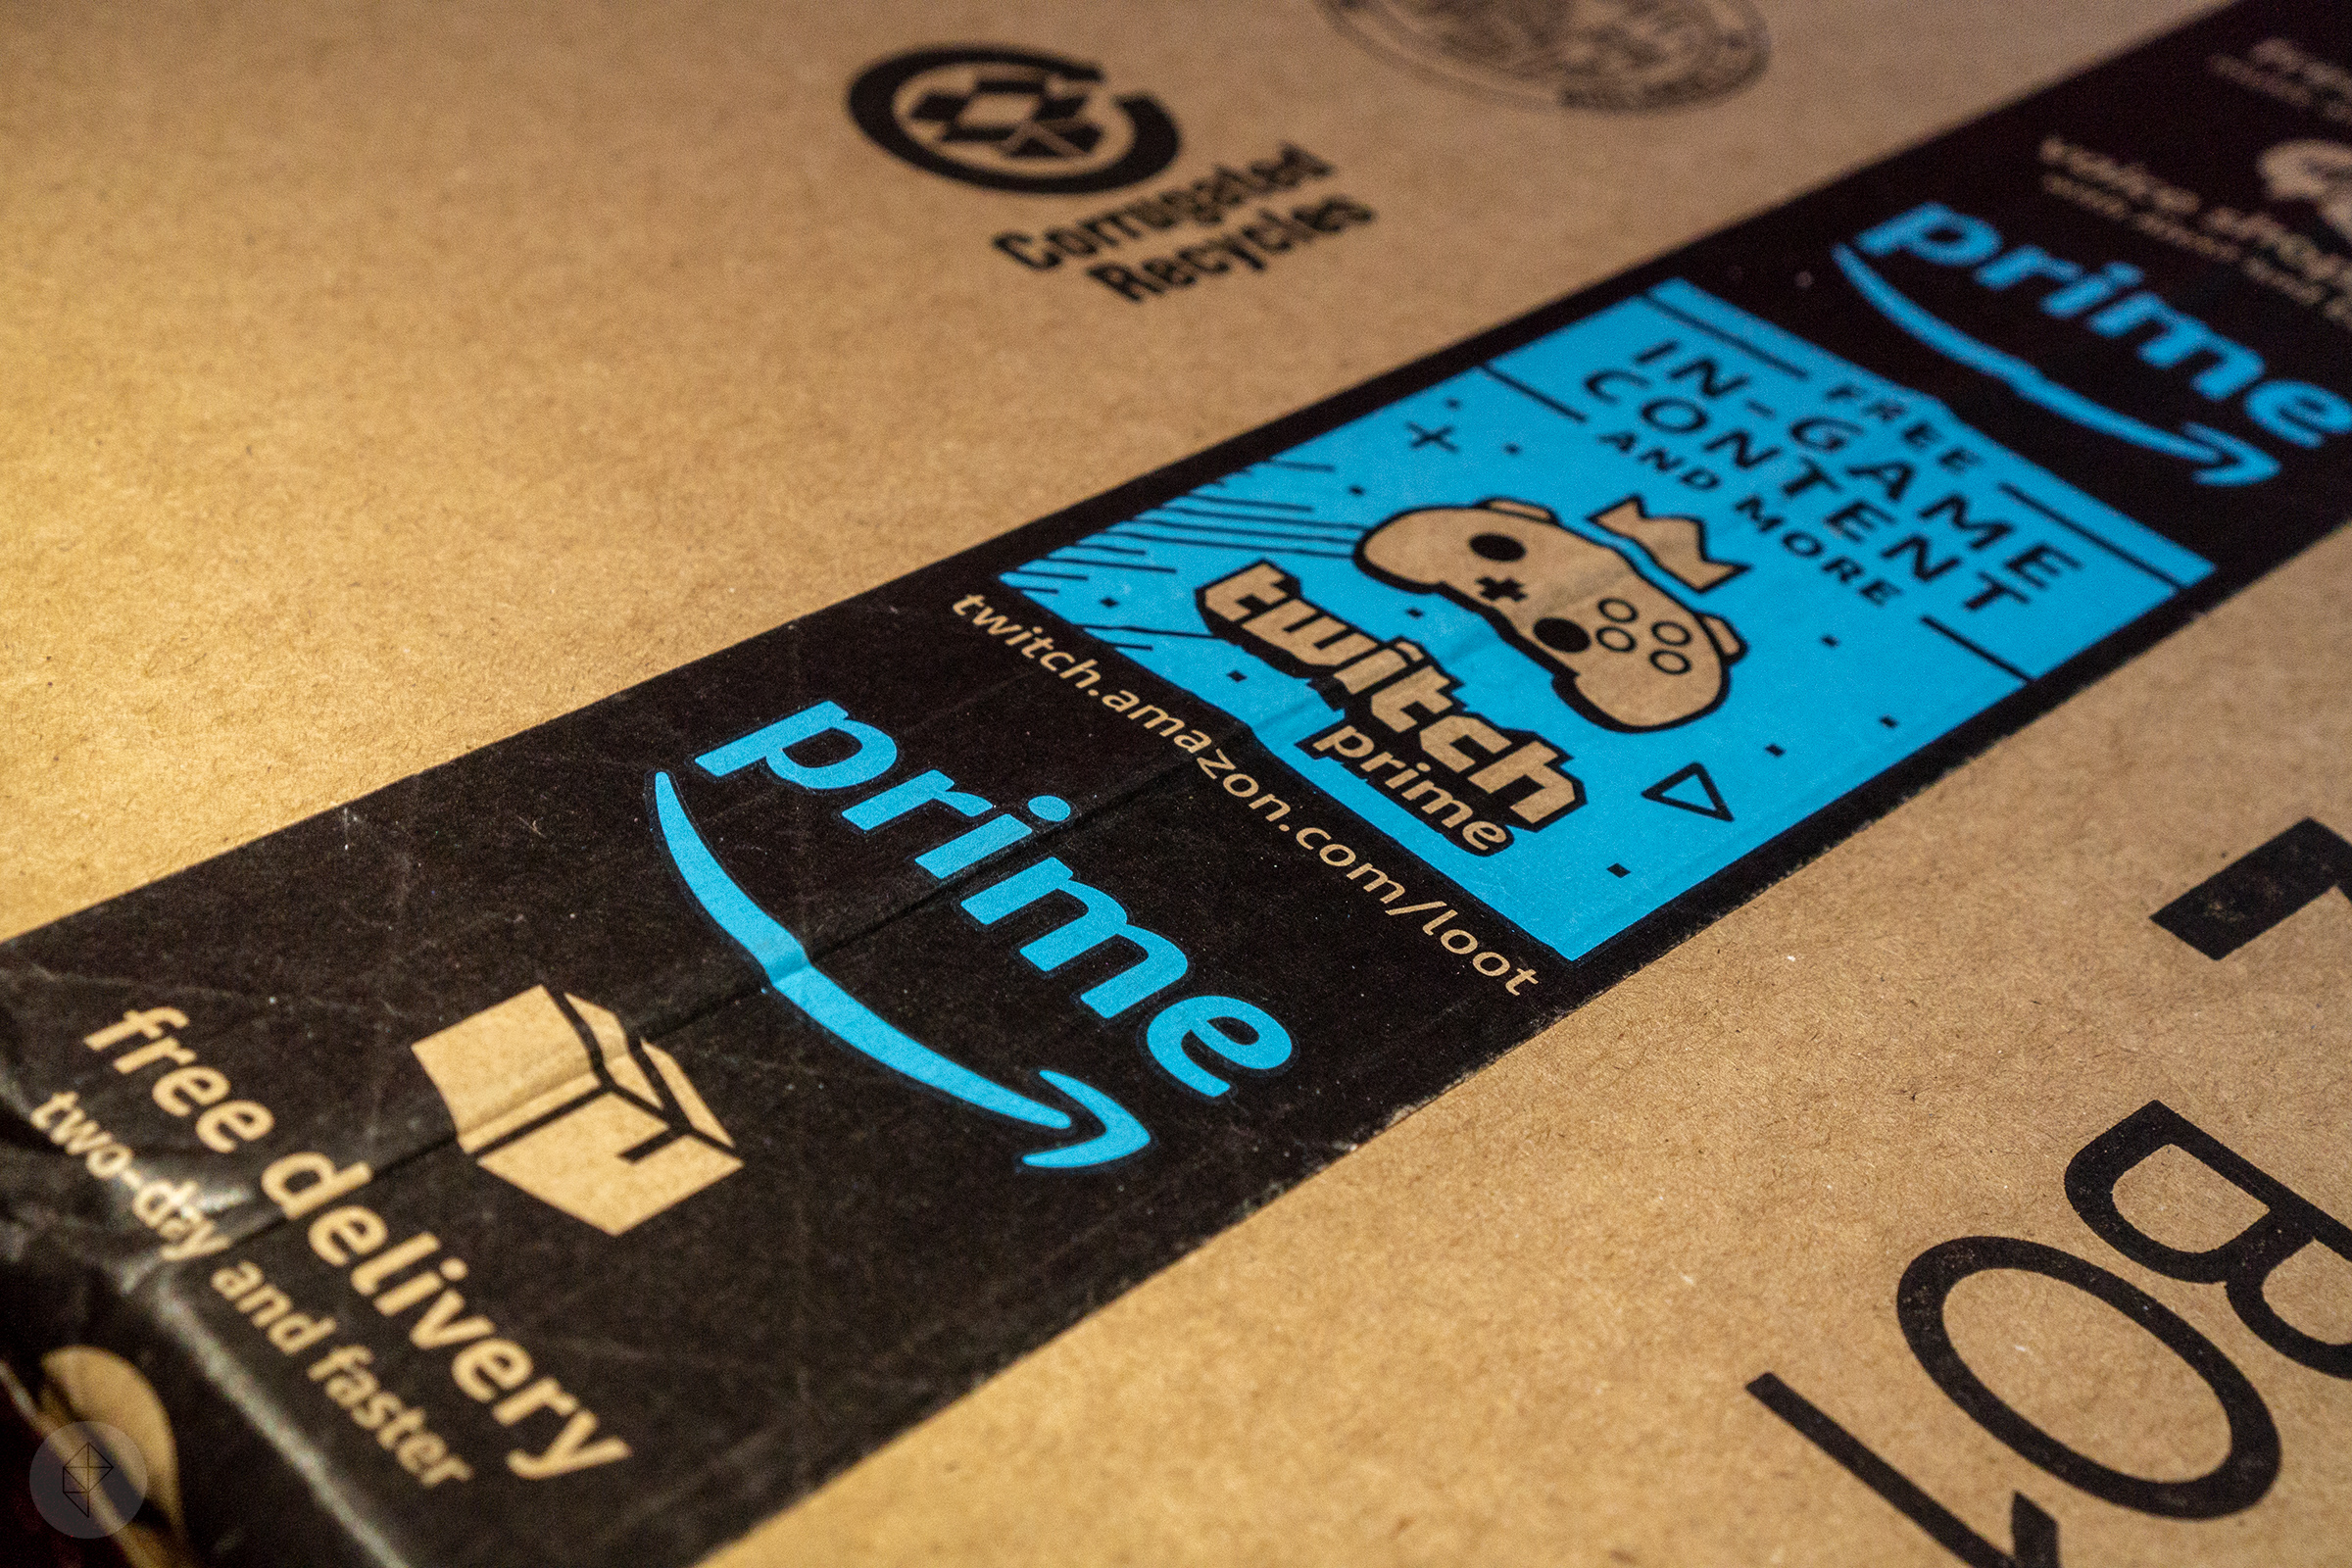 What to expect from Amazon Prime Day 2019